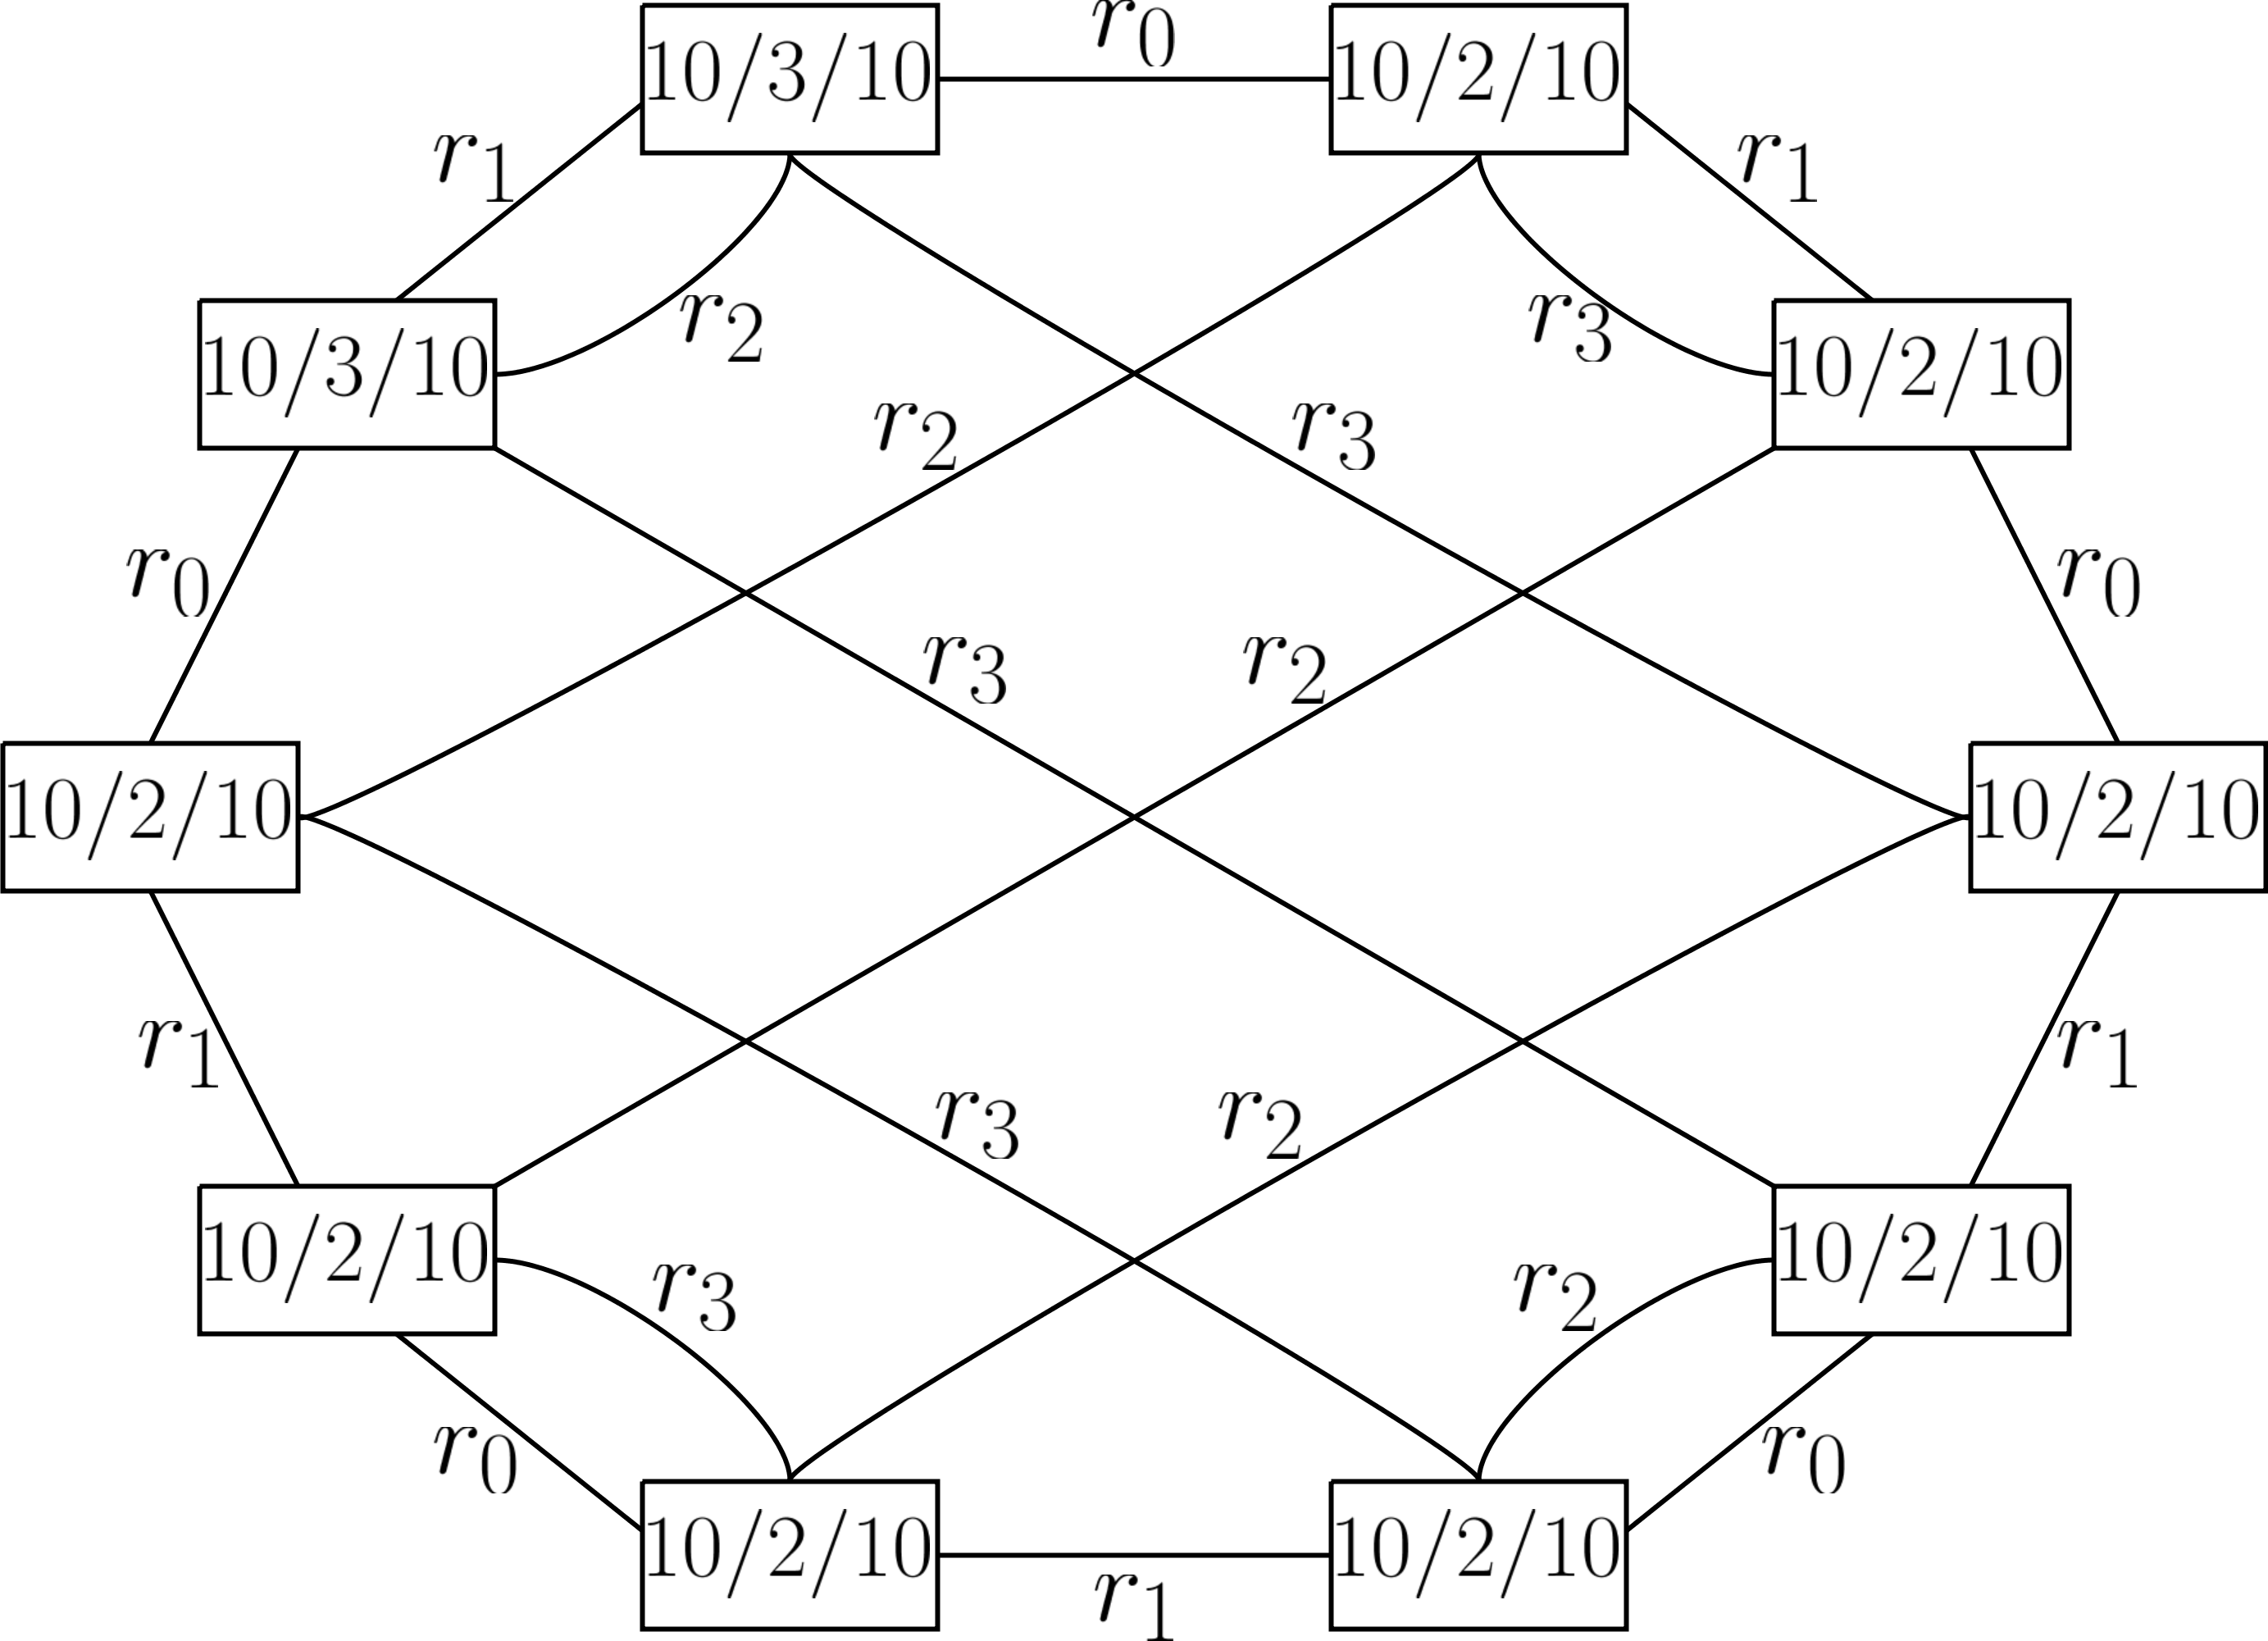 The duality isomorphism swaps pairs in each corner and the pair opposite each other along the equator.